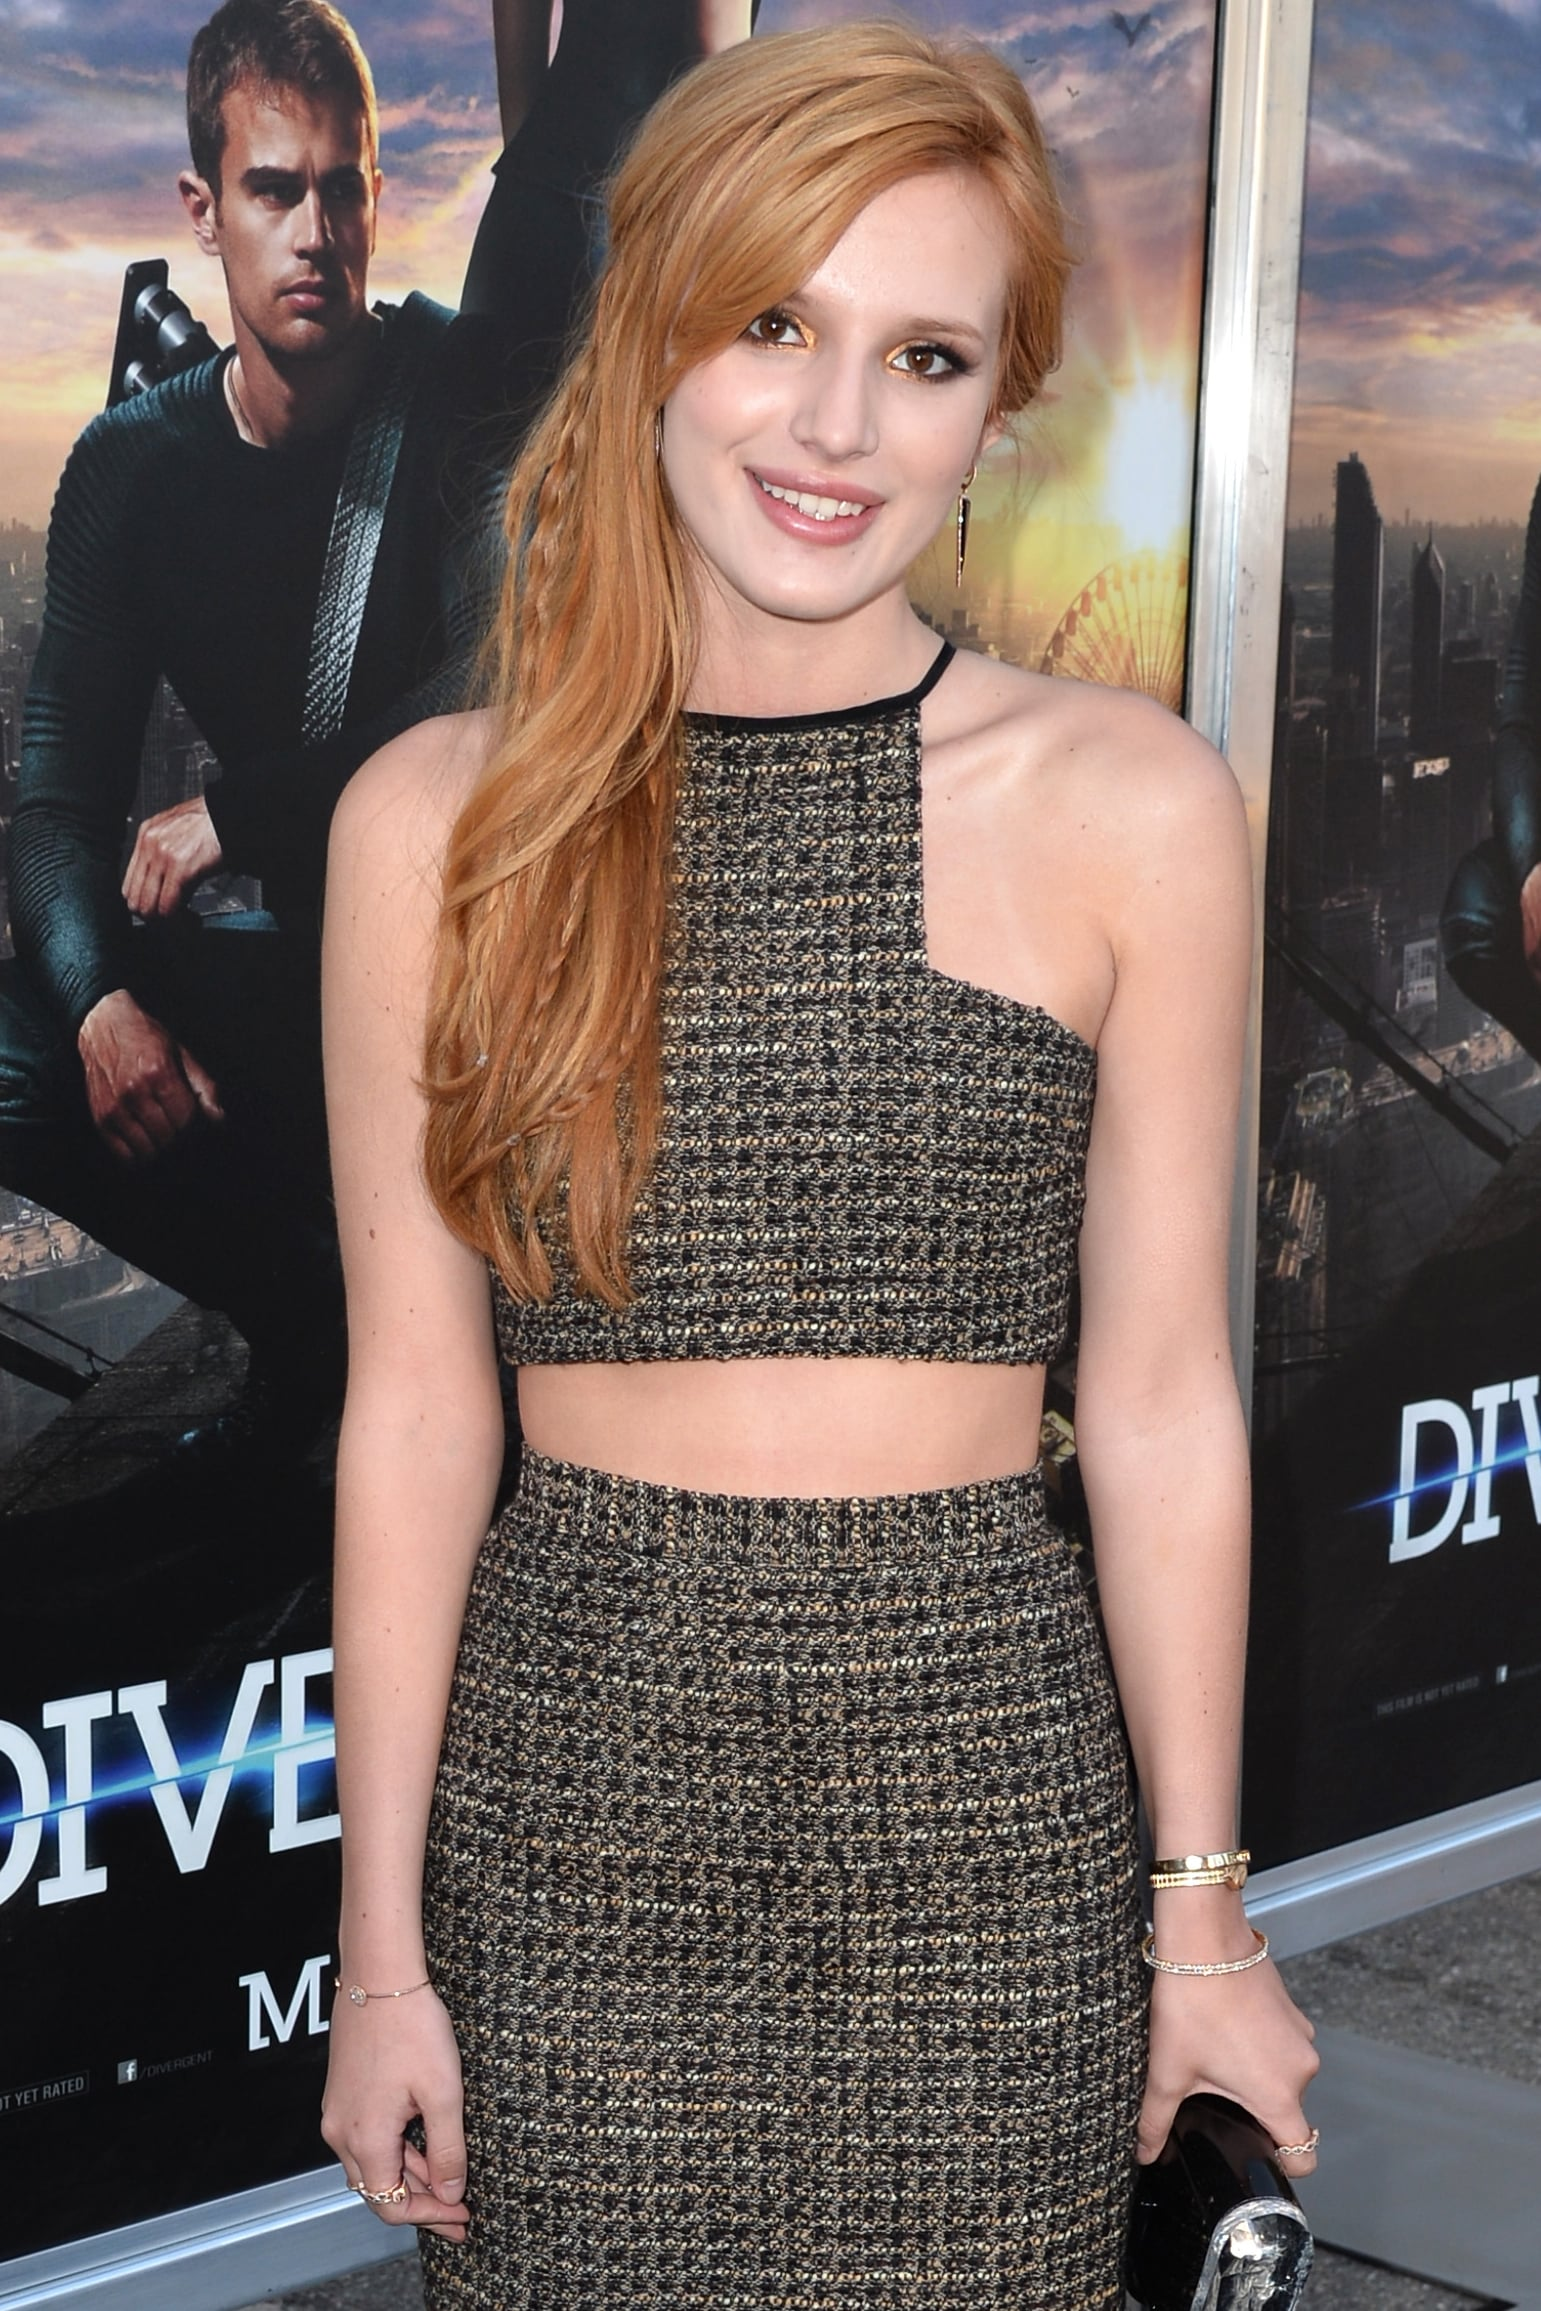 Disney Channel star Bella Thorne joined the new Amityville horror movie, costarring Jennifer Jason Leigh as her mother.